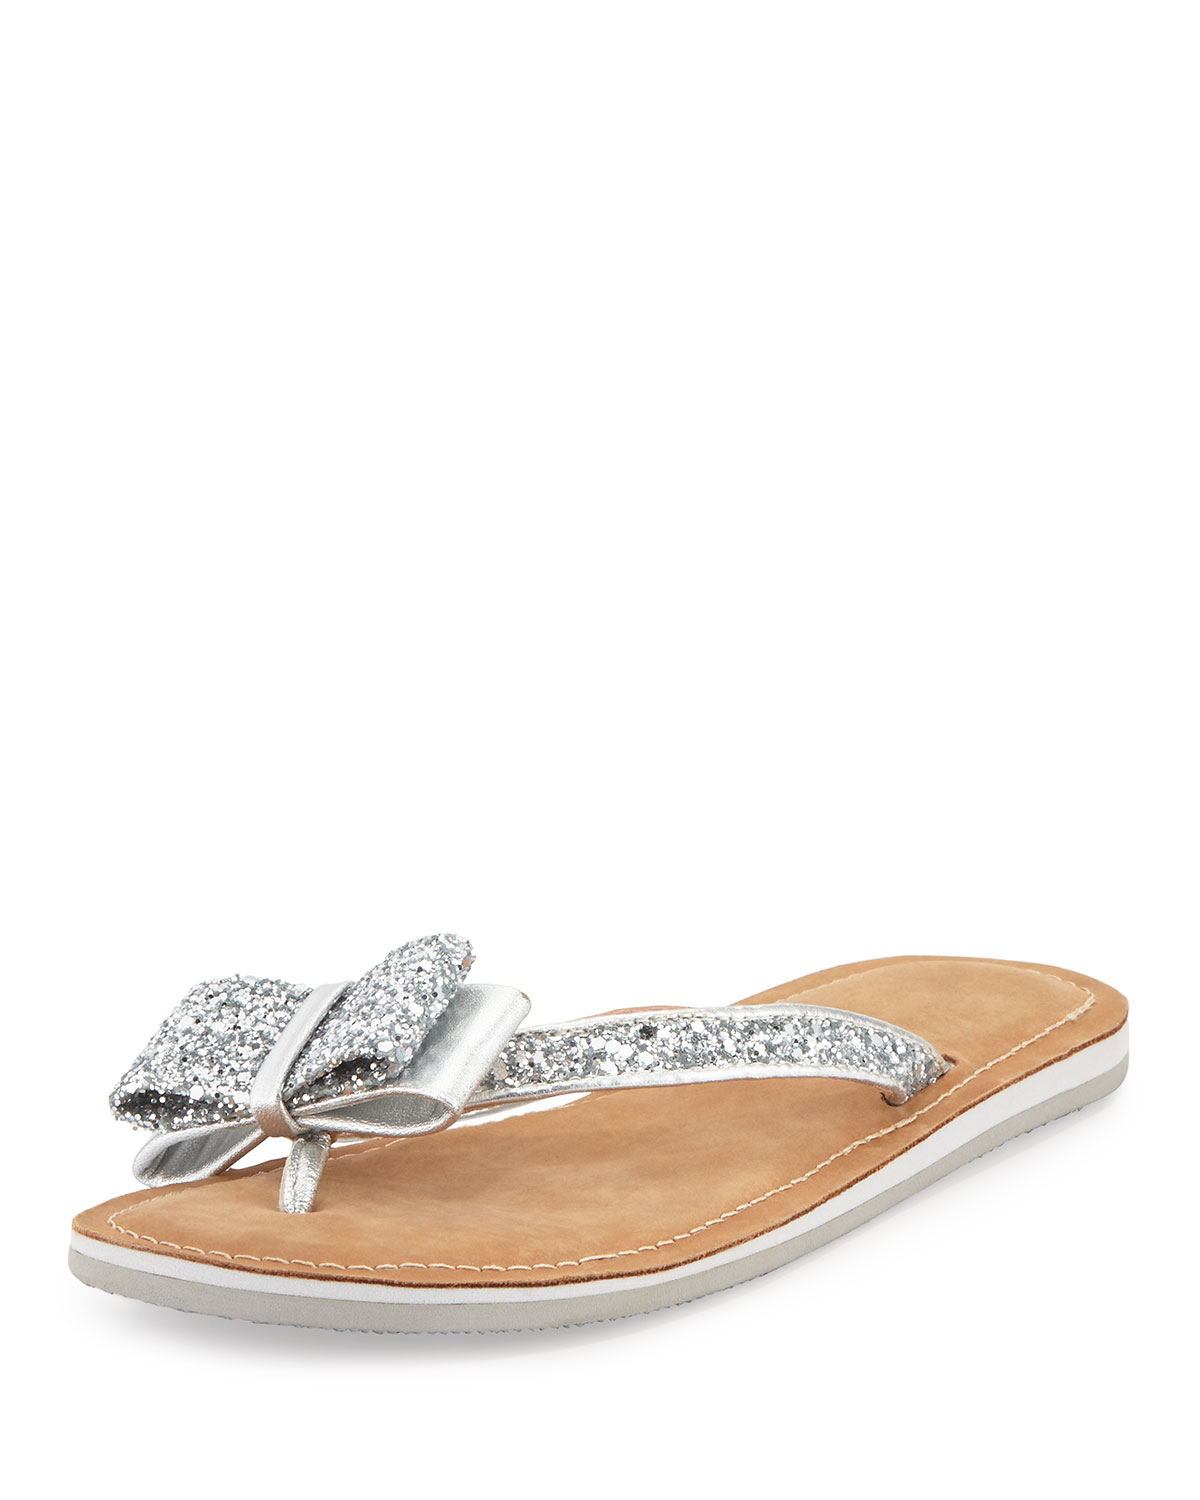 88b2a72256f2 kate spade new york icarda glitter bow flat thong sandal, silver ...